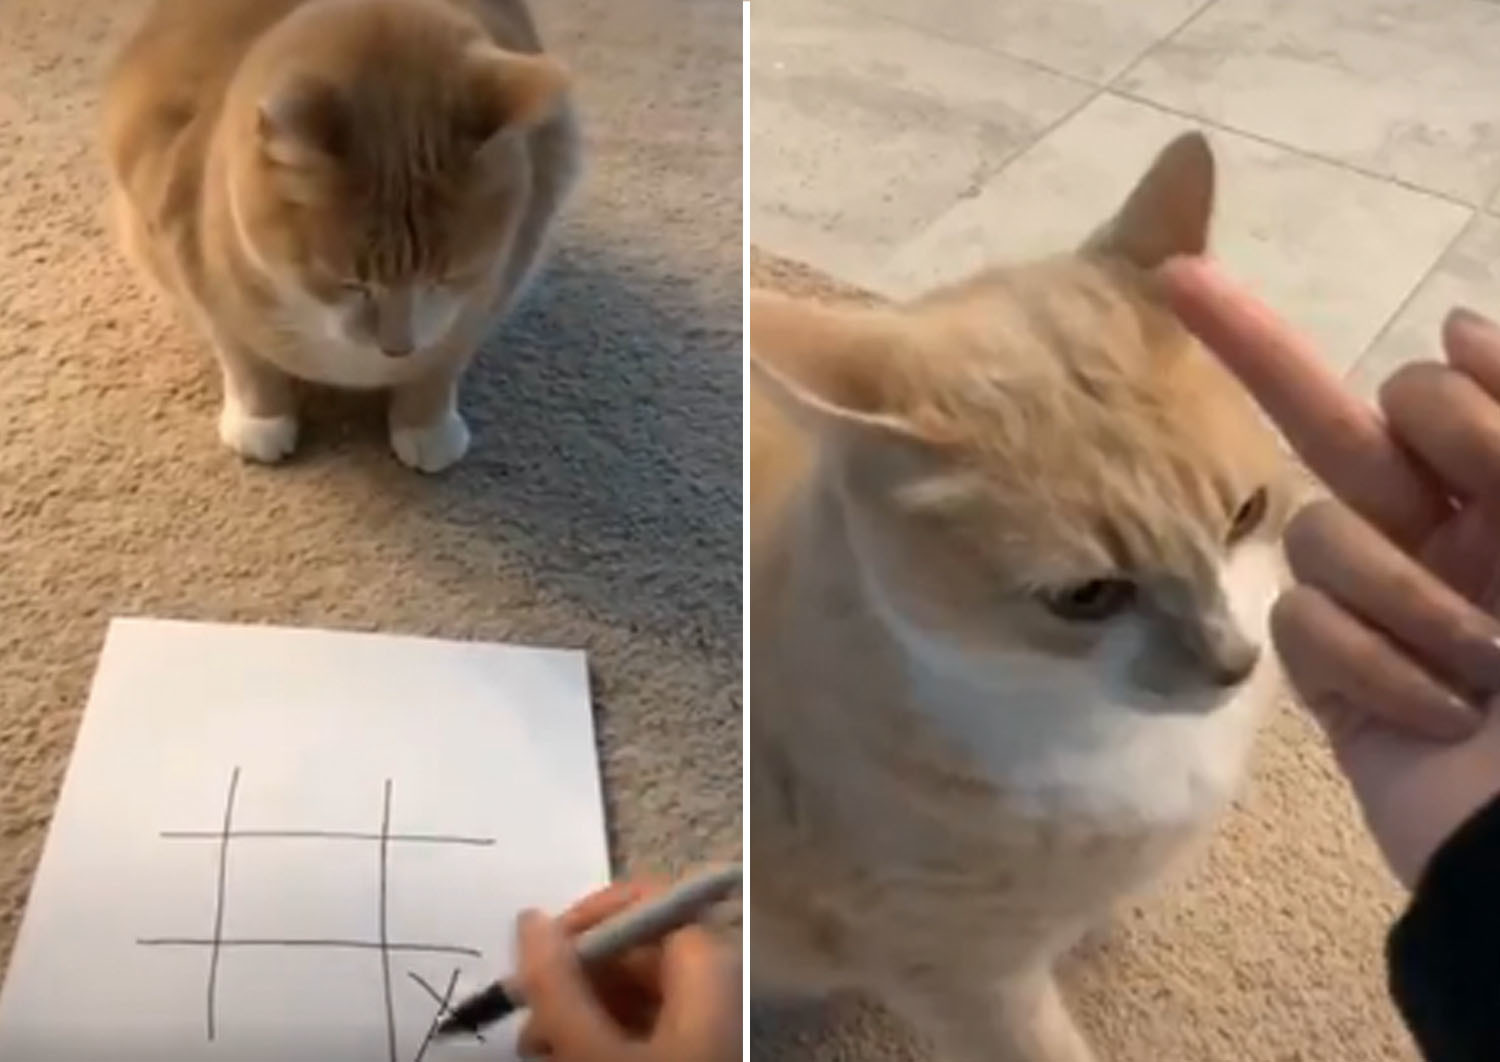 People Are Playing Tic-Tac-Toe With Their Pets, And It's Going Just As Well As You'd Expect